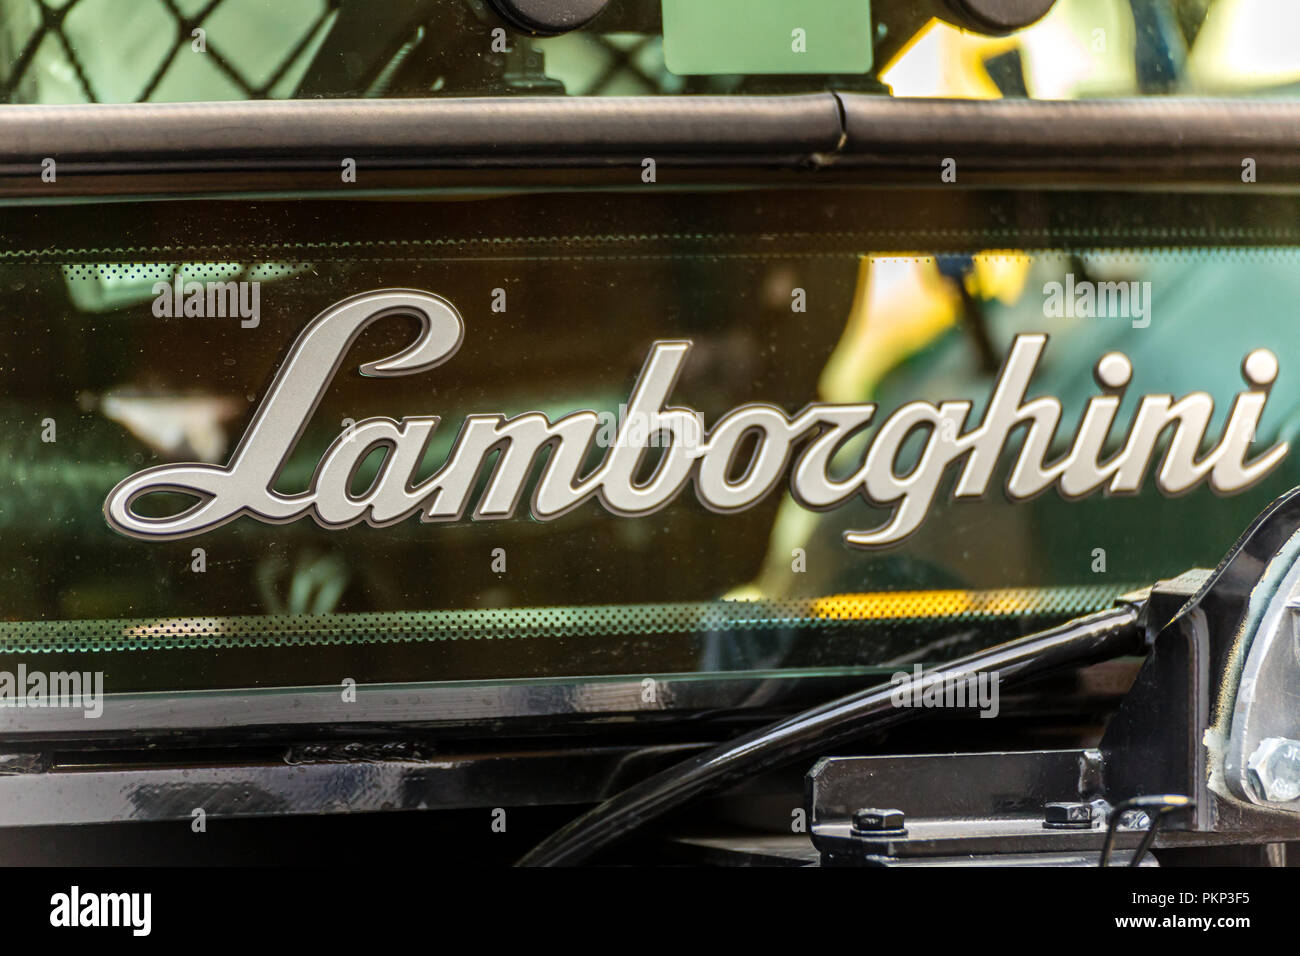 Lamborghini Tractor Stock Photos Lamborghini Tractor Stock Images